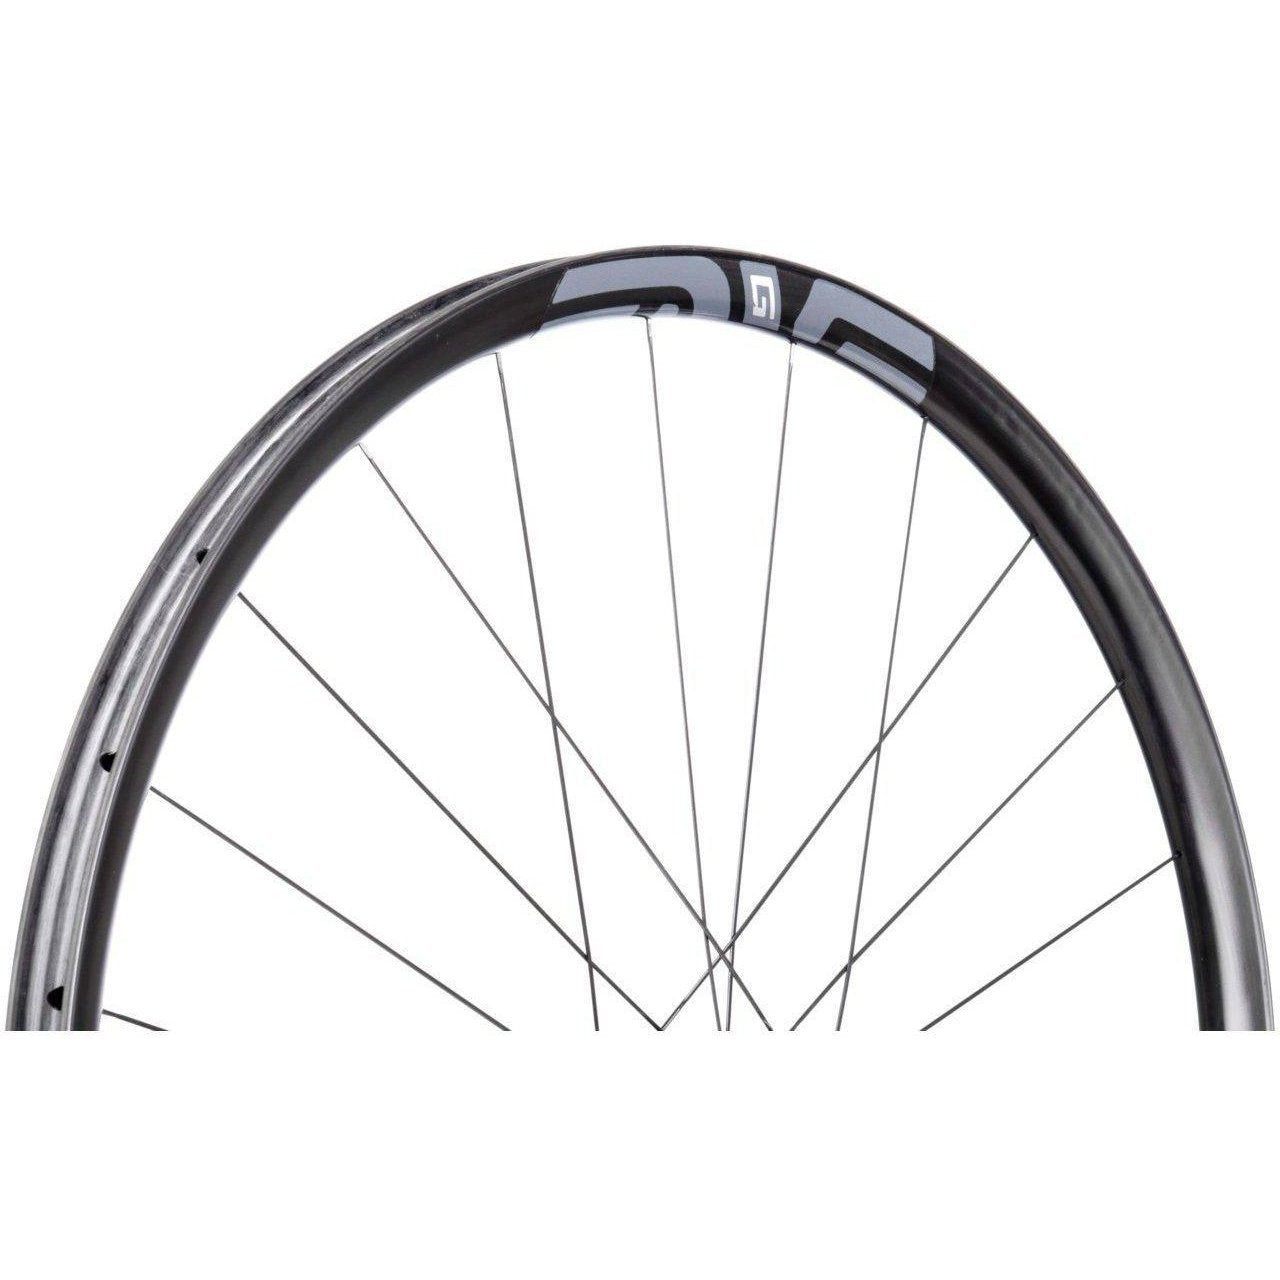 ENVE-ENVE G23 700c Gravel Wheelset - Chris King Hubs-Black/R45D/12x142Thru-Shimano-Tubeless Only-EN00G231003112005-saddleback-elite-performance-cycling